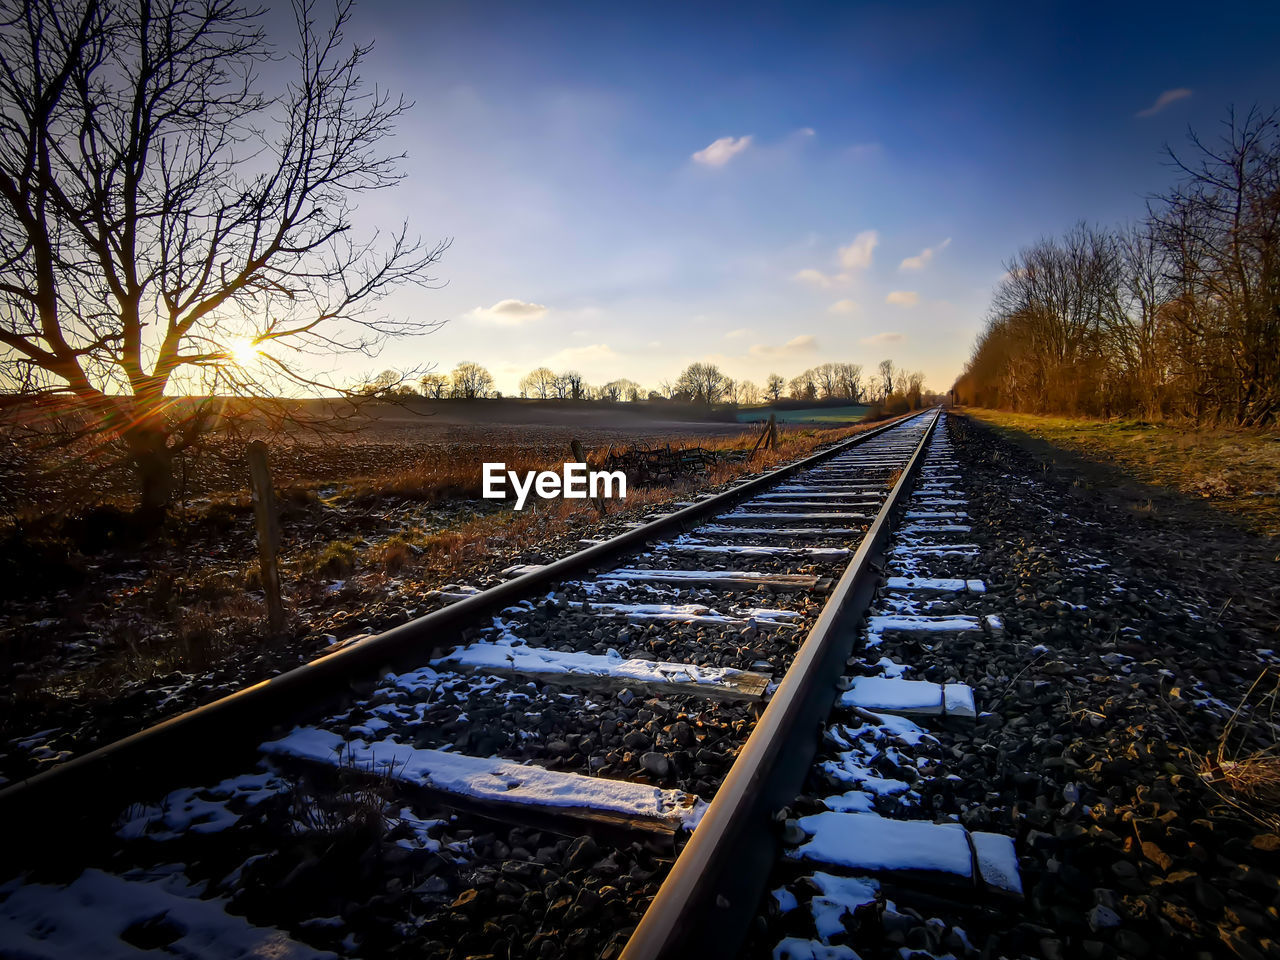 SURFACE LEVEL VIEW OF RAILROAD TRACKS AGAINST SKY